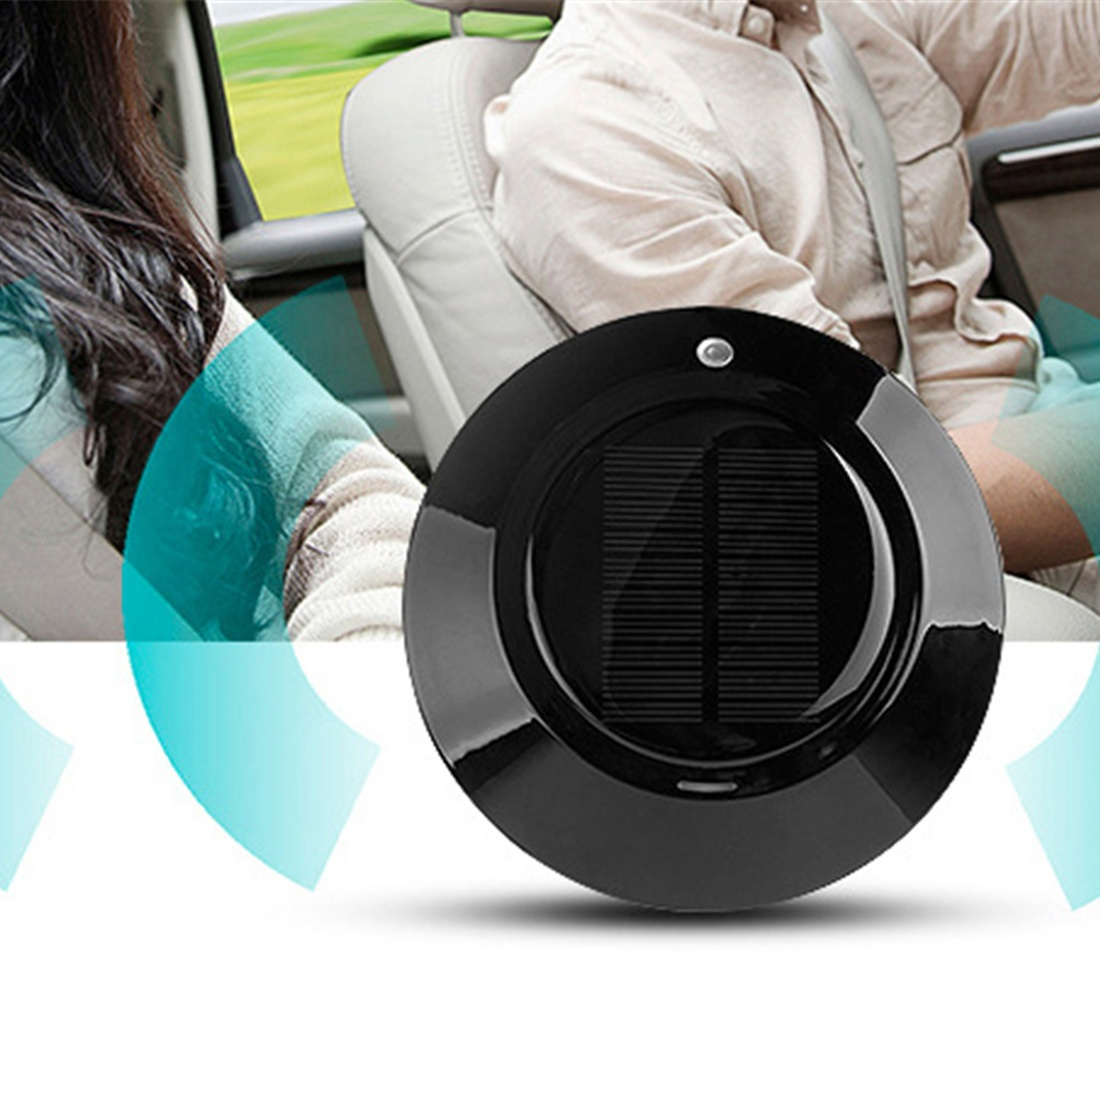 Solar Energy Car Use Air Cleaner Anion PM2.5 Air Purifier UFO Shape Air Freshener Air cleaner car anion air purifier intelligent air purifier oxygen bar car air freshener cigarette smoke absorber with adapter